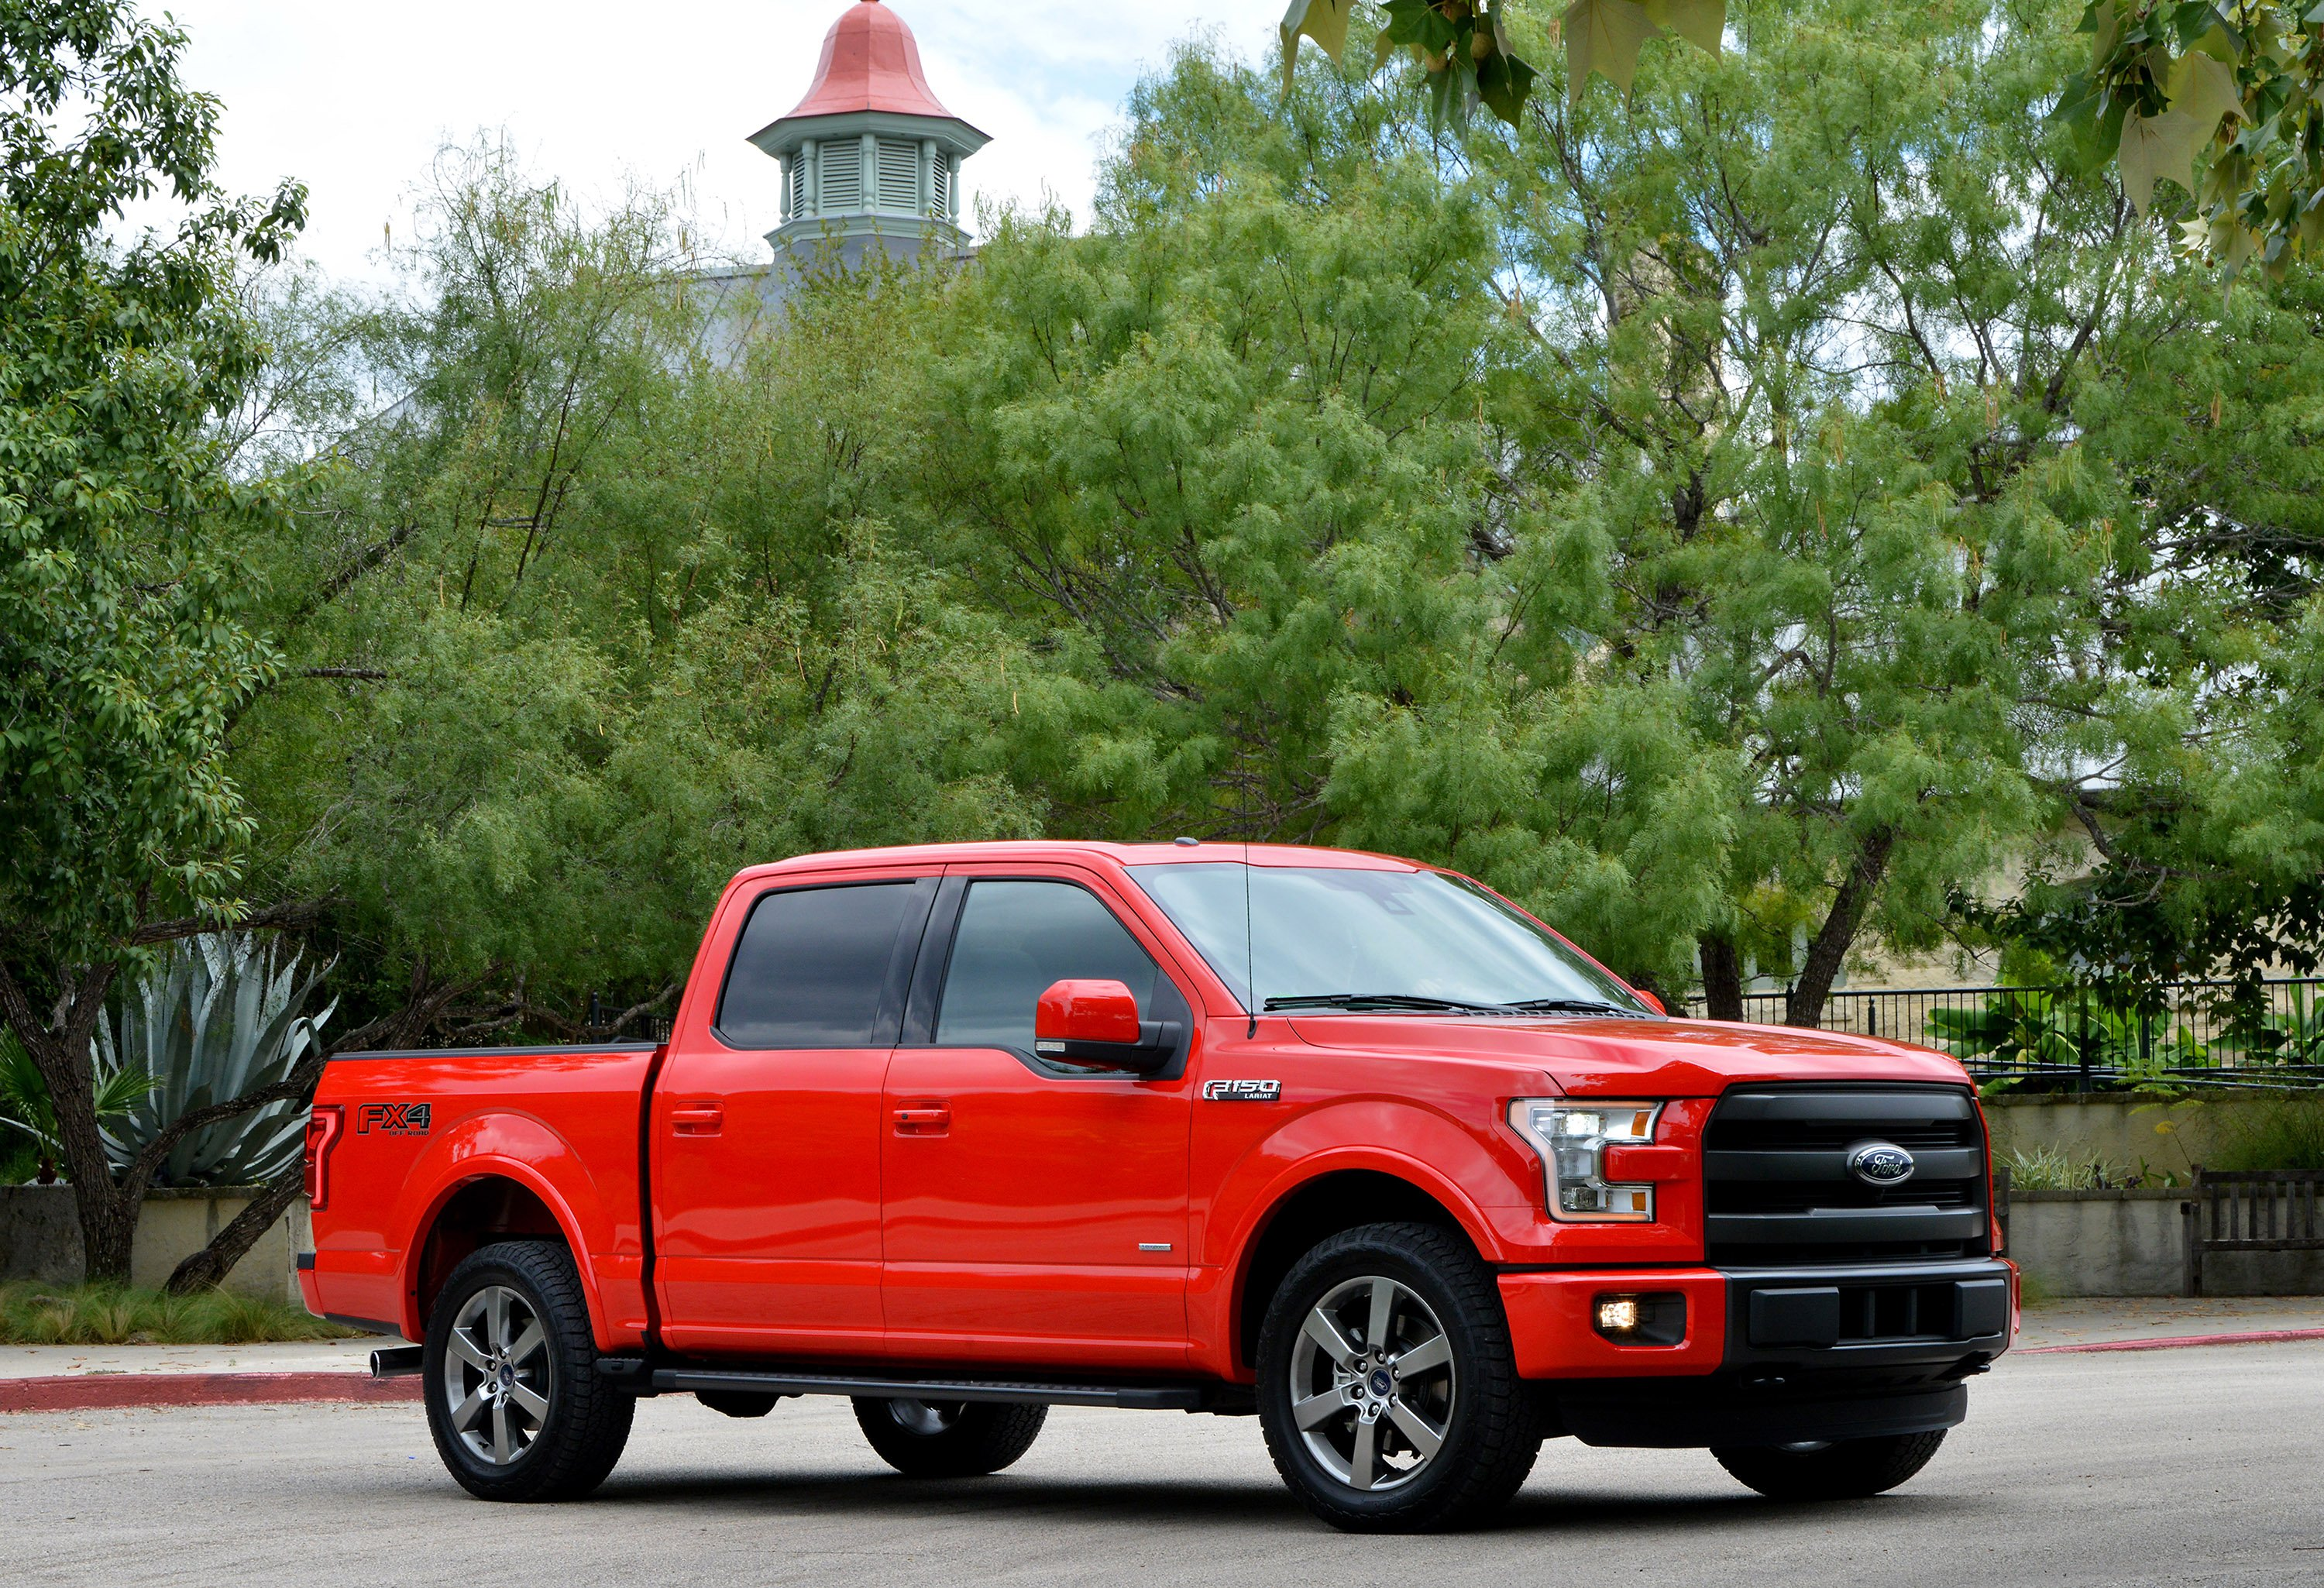 2015 Ford F 150 XLT SuperCrew pickup f150 wallpaper background 3000x2050